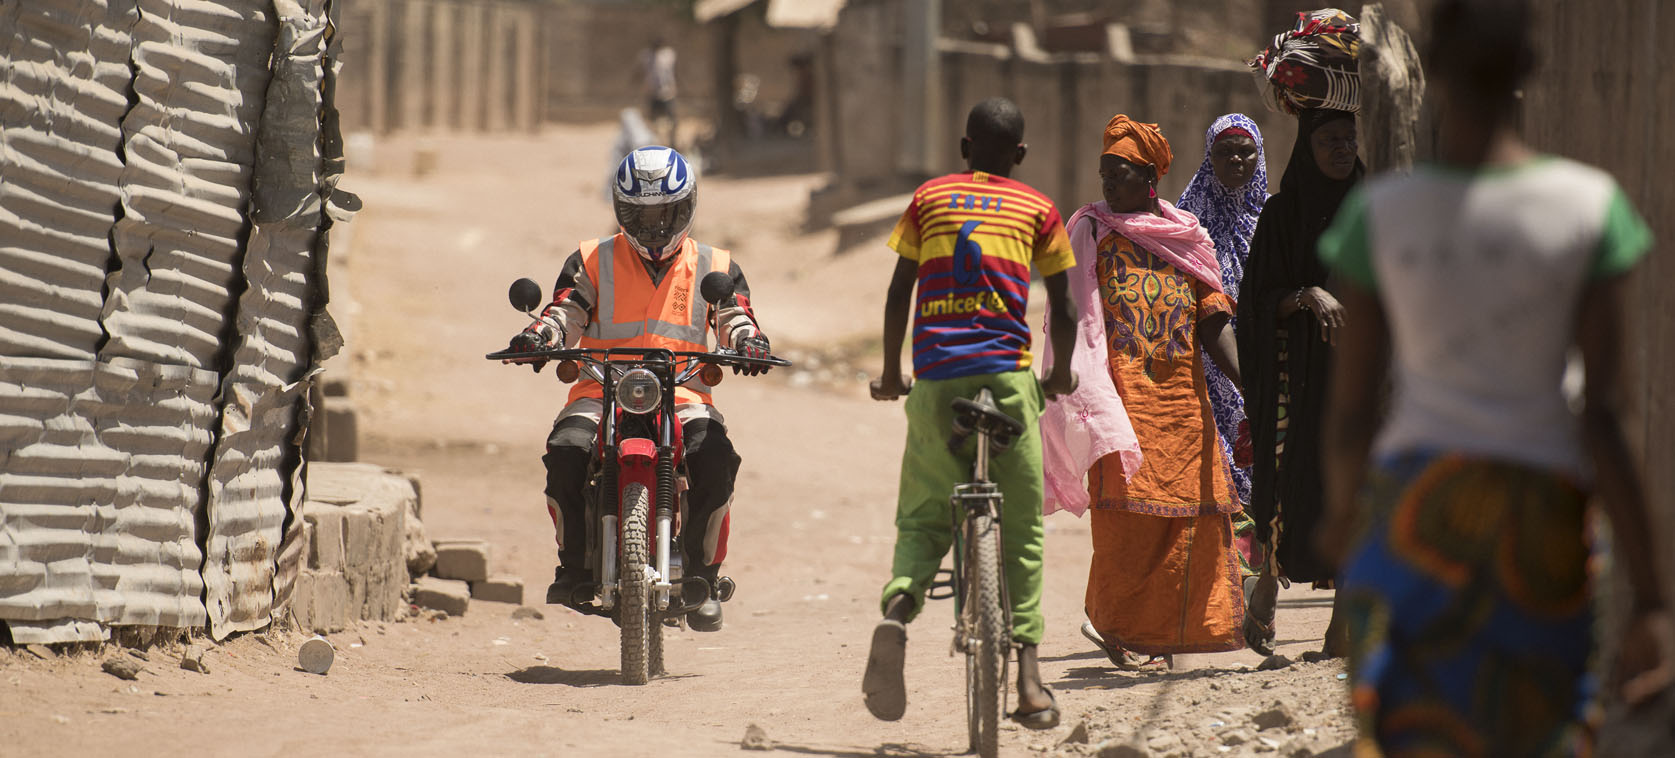 Healthworker on motorcycle, The Gambia